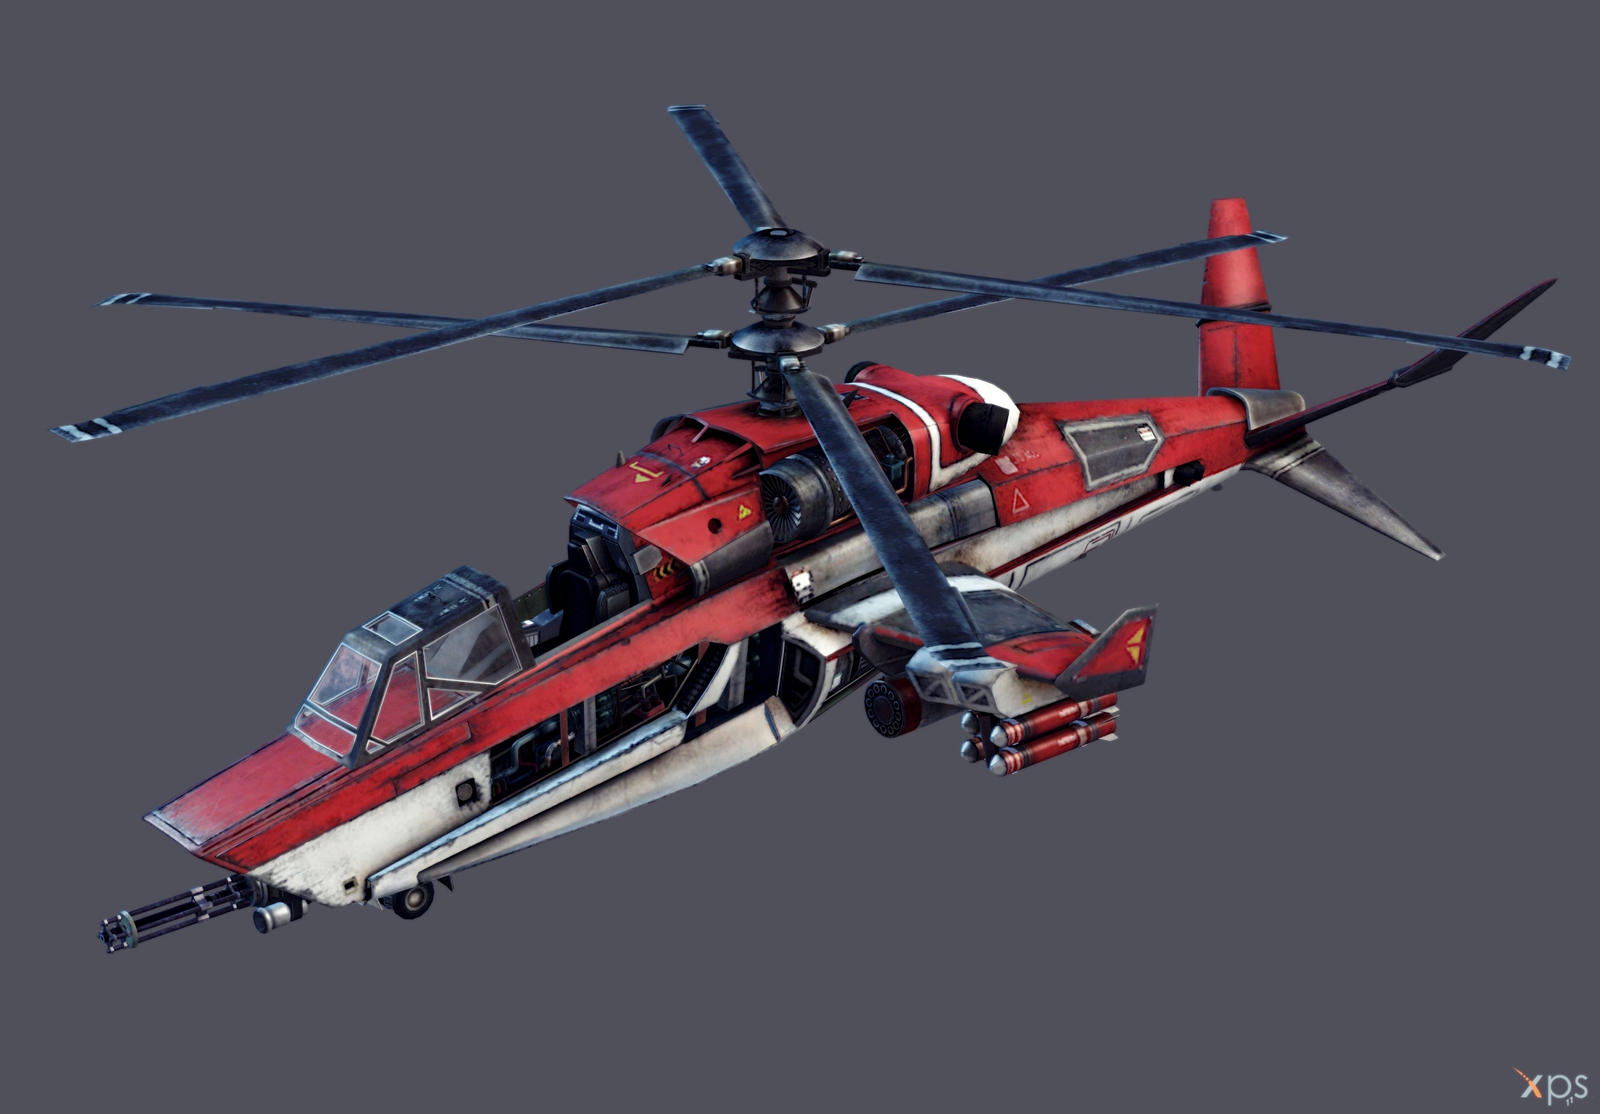 transformer helicopter with Arkham Knigh S Gunship 548552933 on MECHTECH 20VOYAGER 20SKYHAMMER 20 both 20modes  2029702 moreover 2013 10 01 archive as well 154162 The Power Grid Of The Future Will Be Controlled By Neurons In A Petri Dish furthermore Decepticon Ravage Photo likewise ARKHAM KNIGH S GUNSHIP 548552933.